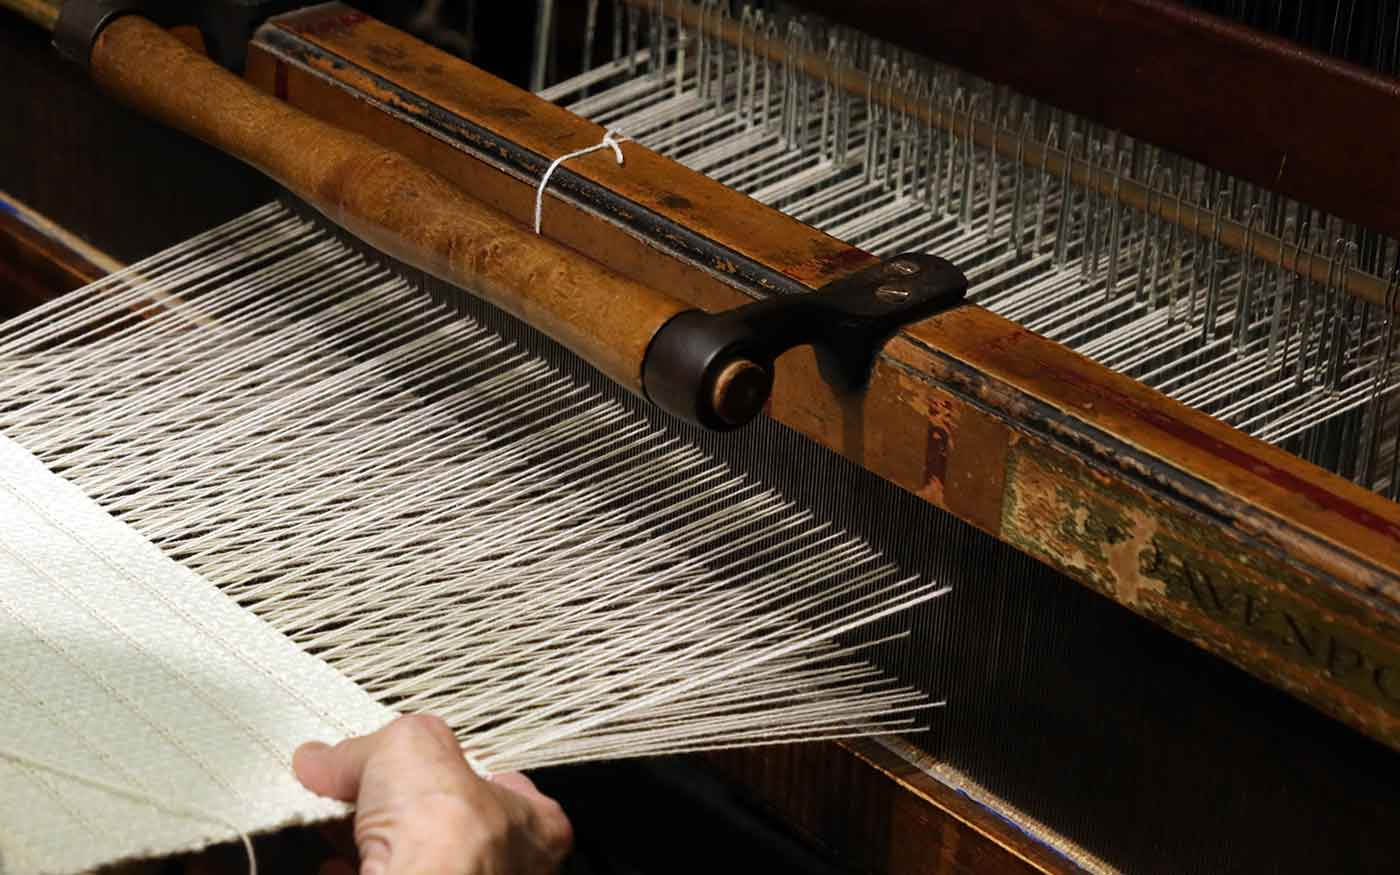 portugal history of weaving textiles